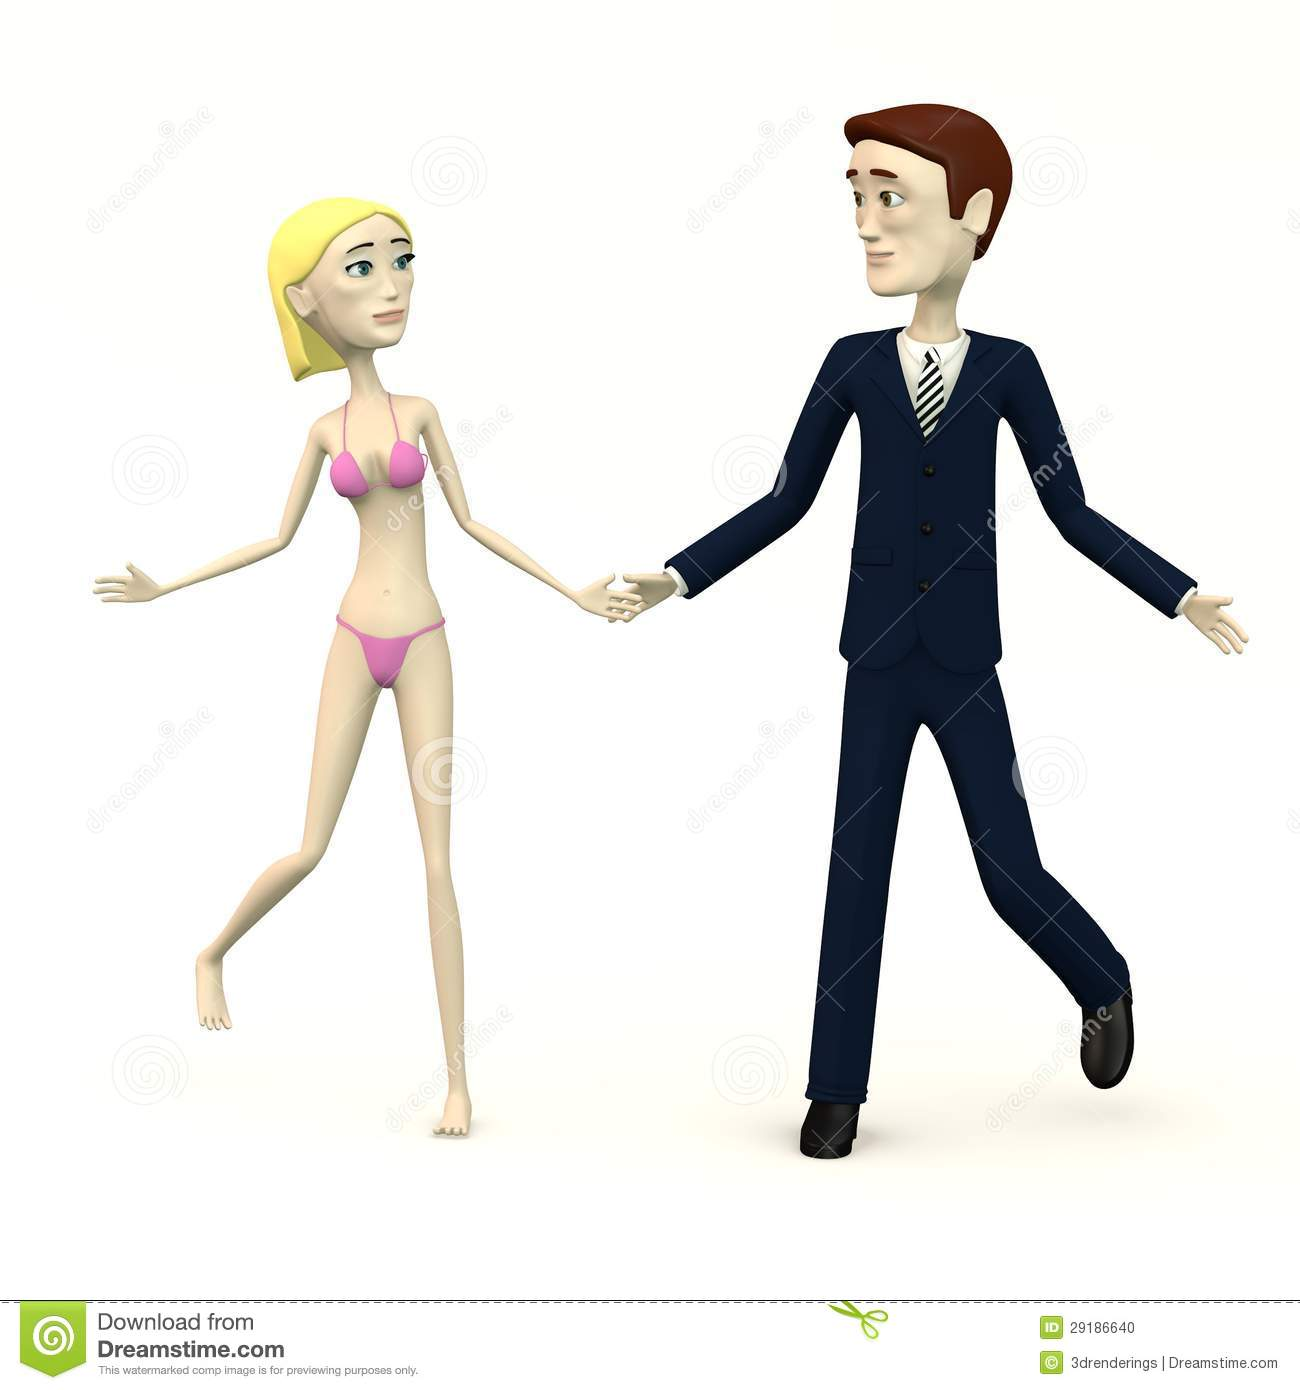 Cartoon Characters Dancing : Cartoon characters dancing stock photo image